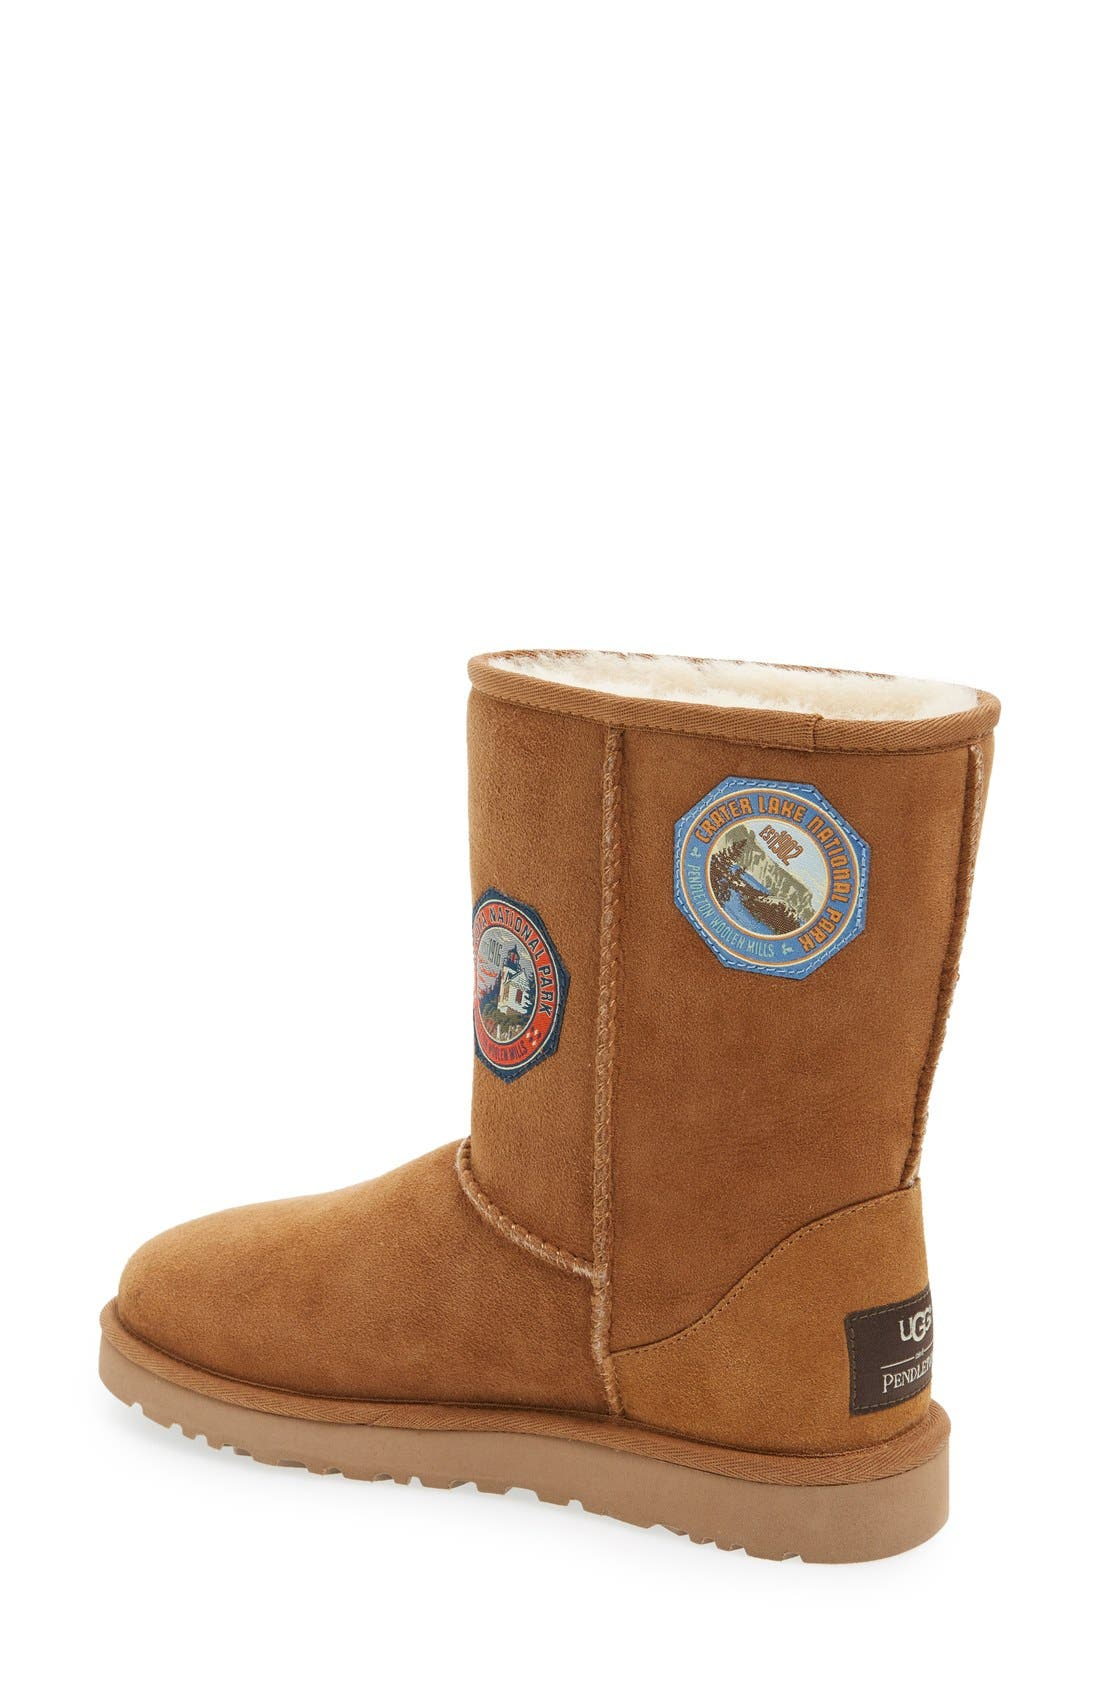 Alternate Image 2  - UGG® x Pendleton 'Classic Short - Patch' Boot (Women)